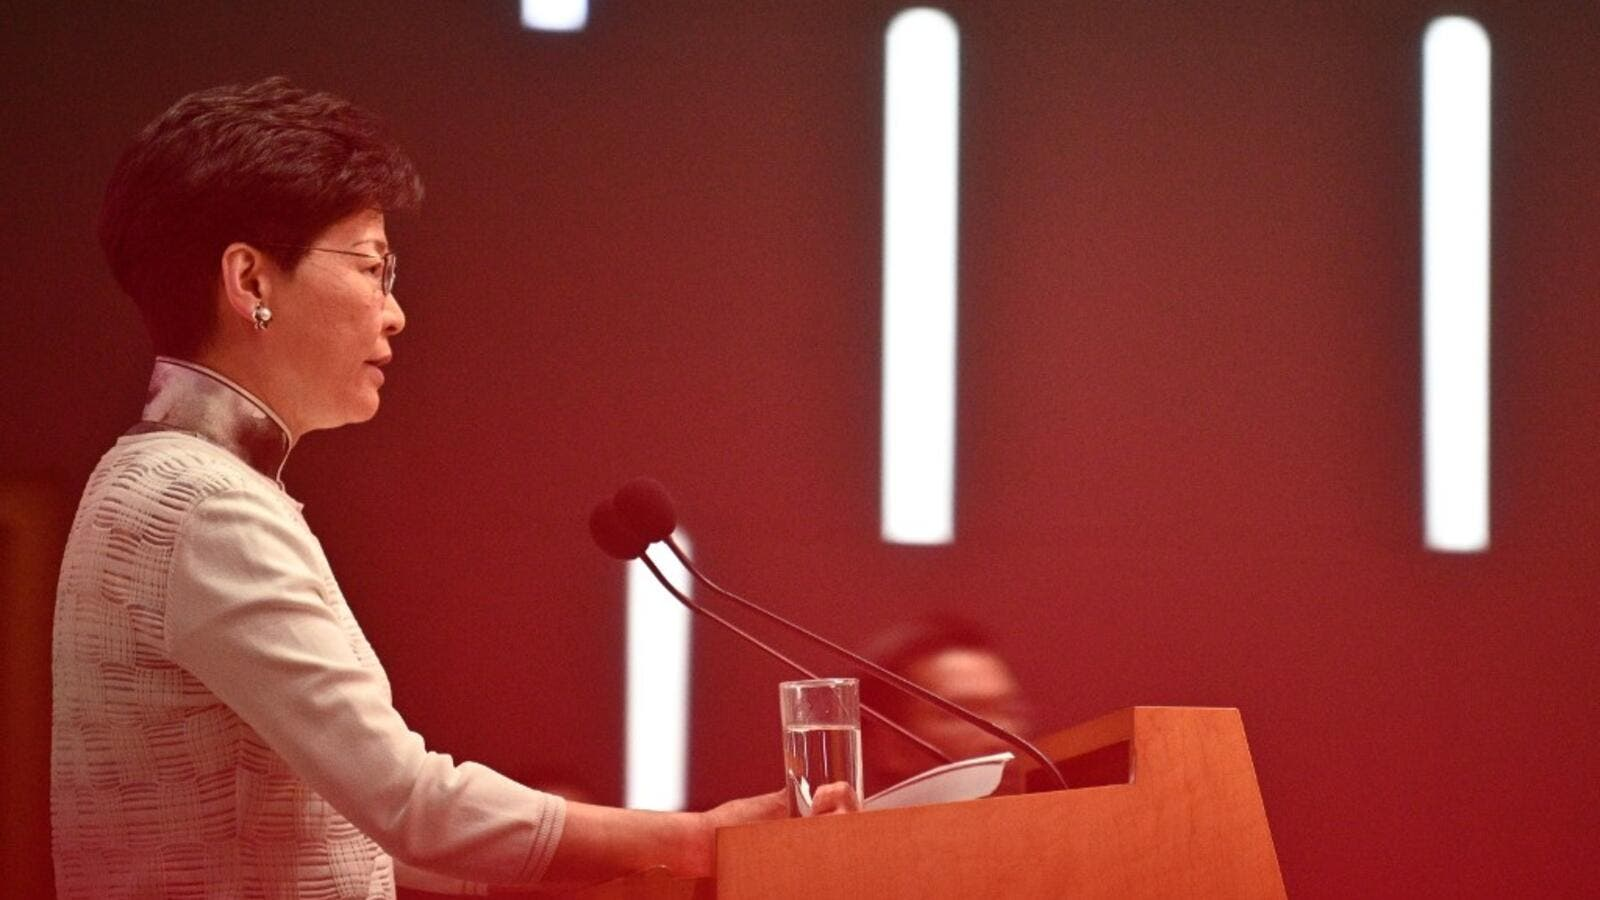 Hong Kong Chief Executive Carrie Lam speaks during a press conference at the government headquarters in Hong Kong on June 15, 2019.  Anthony WALLACE / AFP